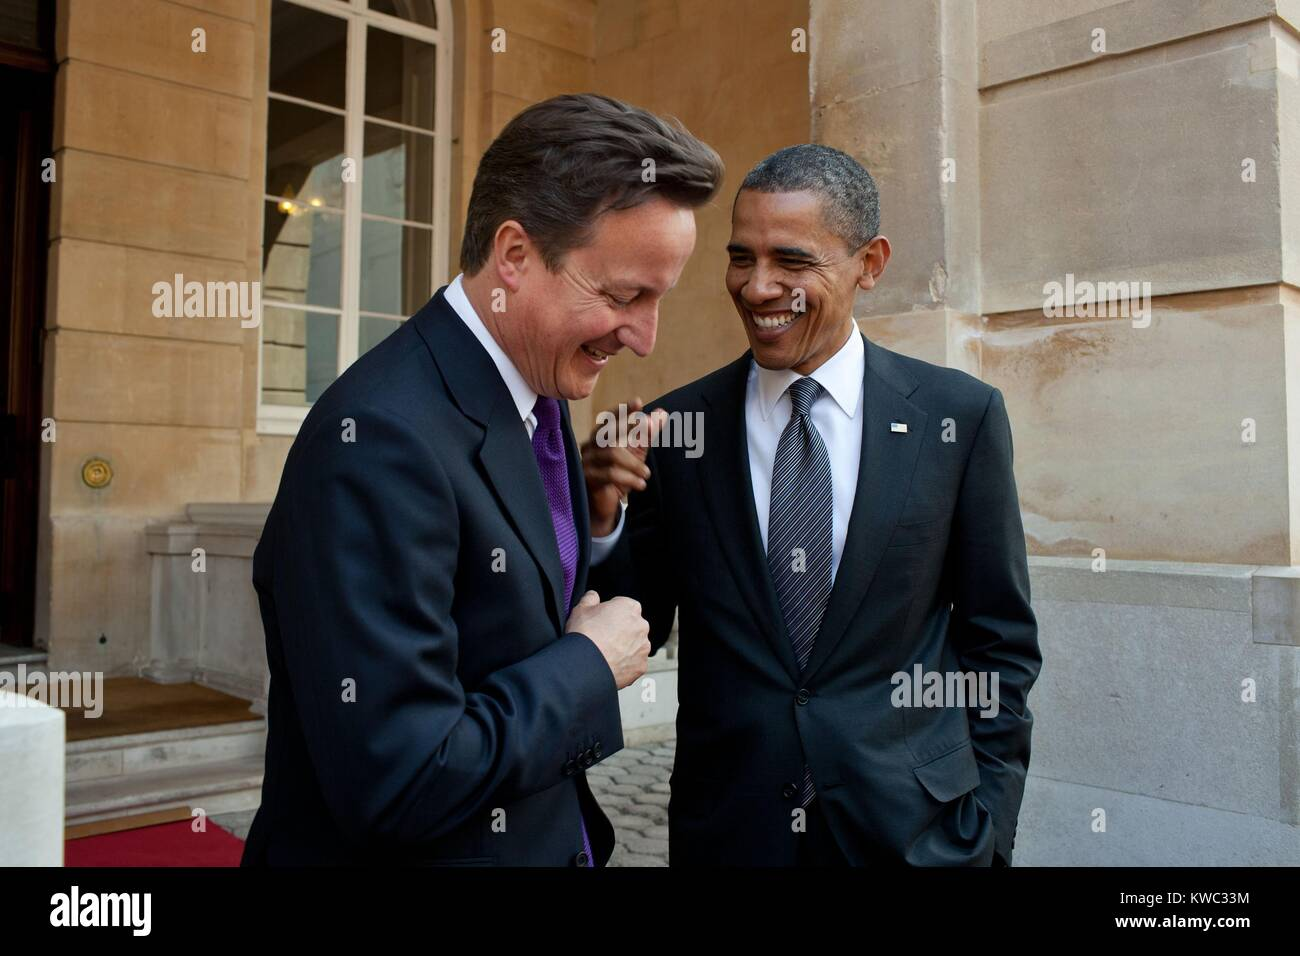 President Obama talks with British Prime Minister David Cameron at Lancaster House in London. May 25, 2011. (BSLOC - Stock Image